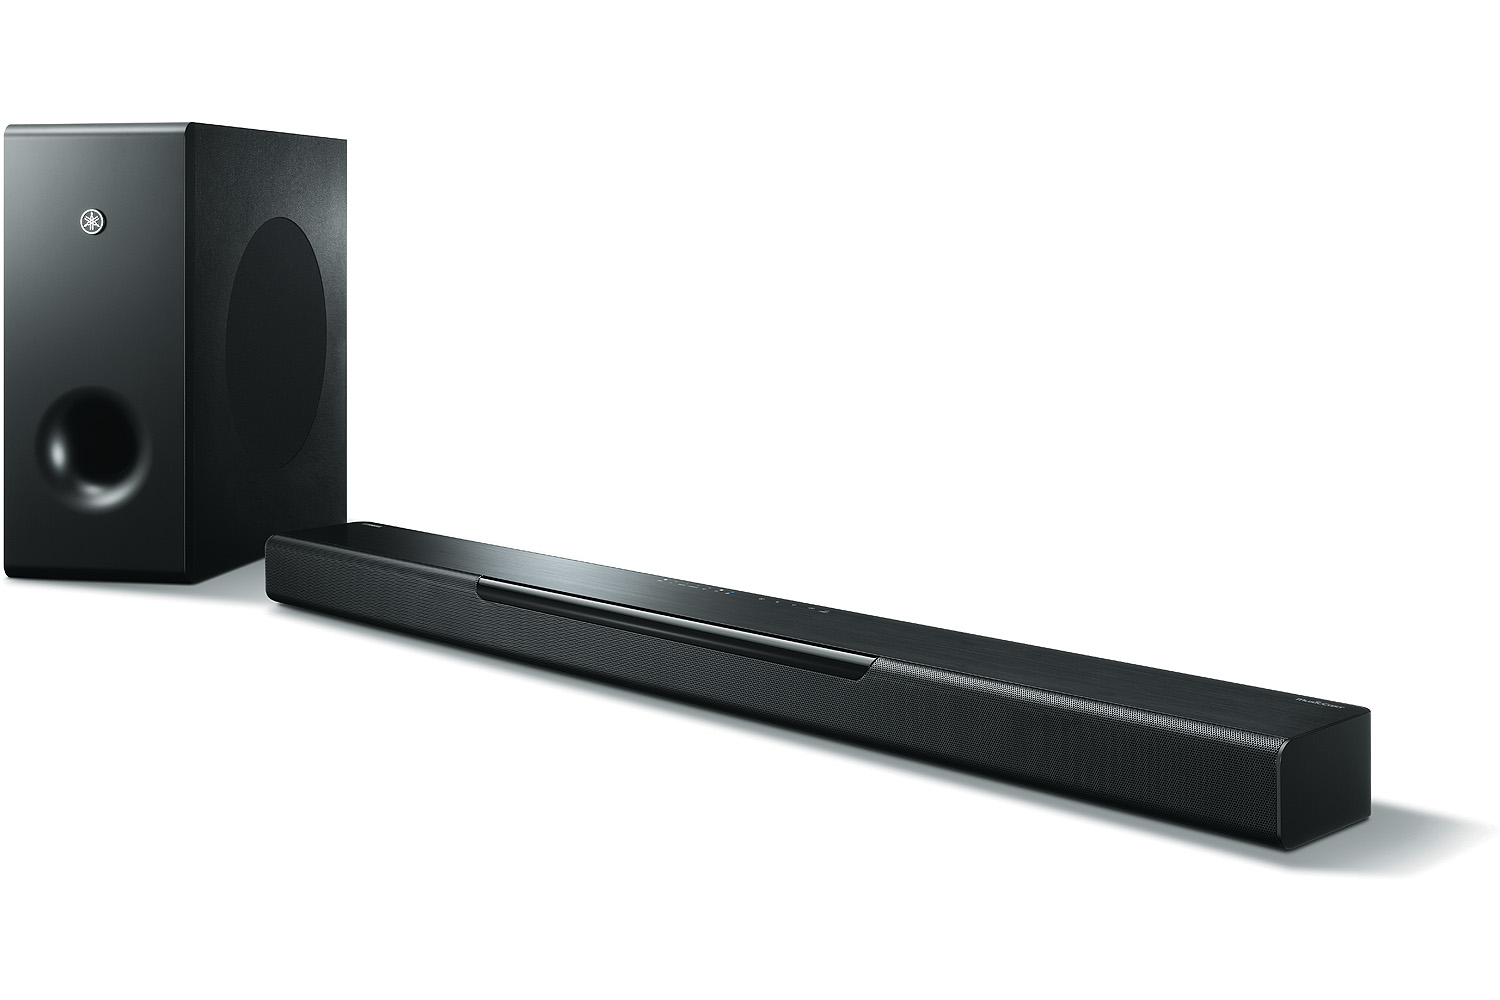 Yamaha MusicCast BAR 400 Sound Bar with Wireless Subwoofer and Alexa Connectivity - Black